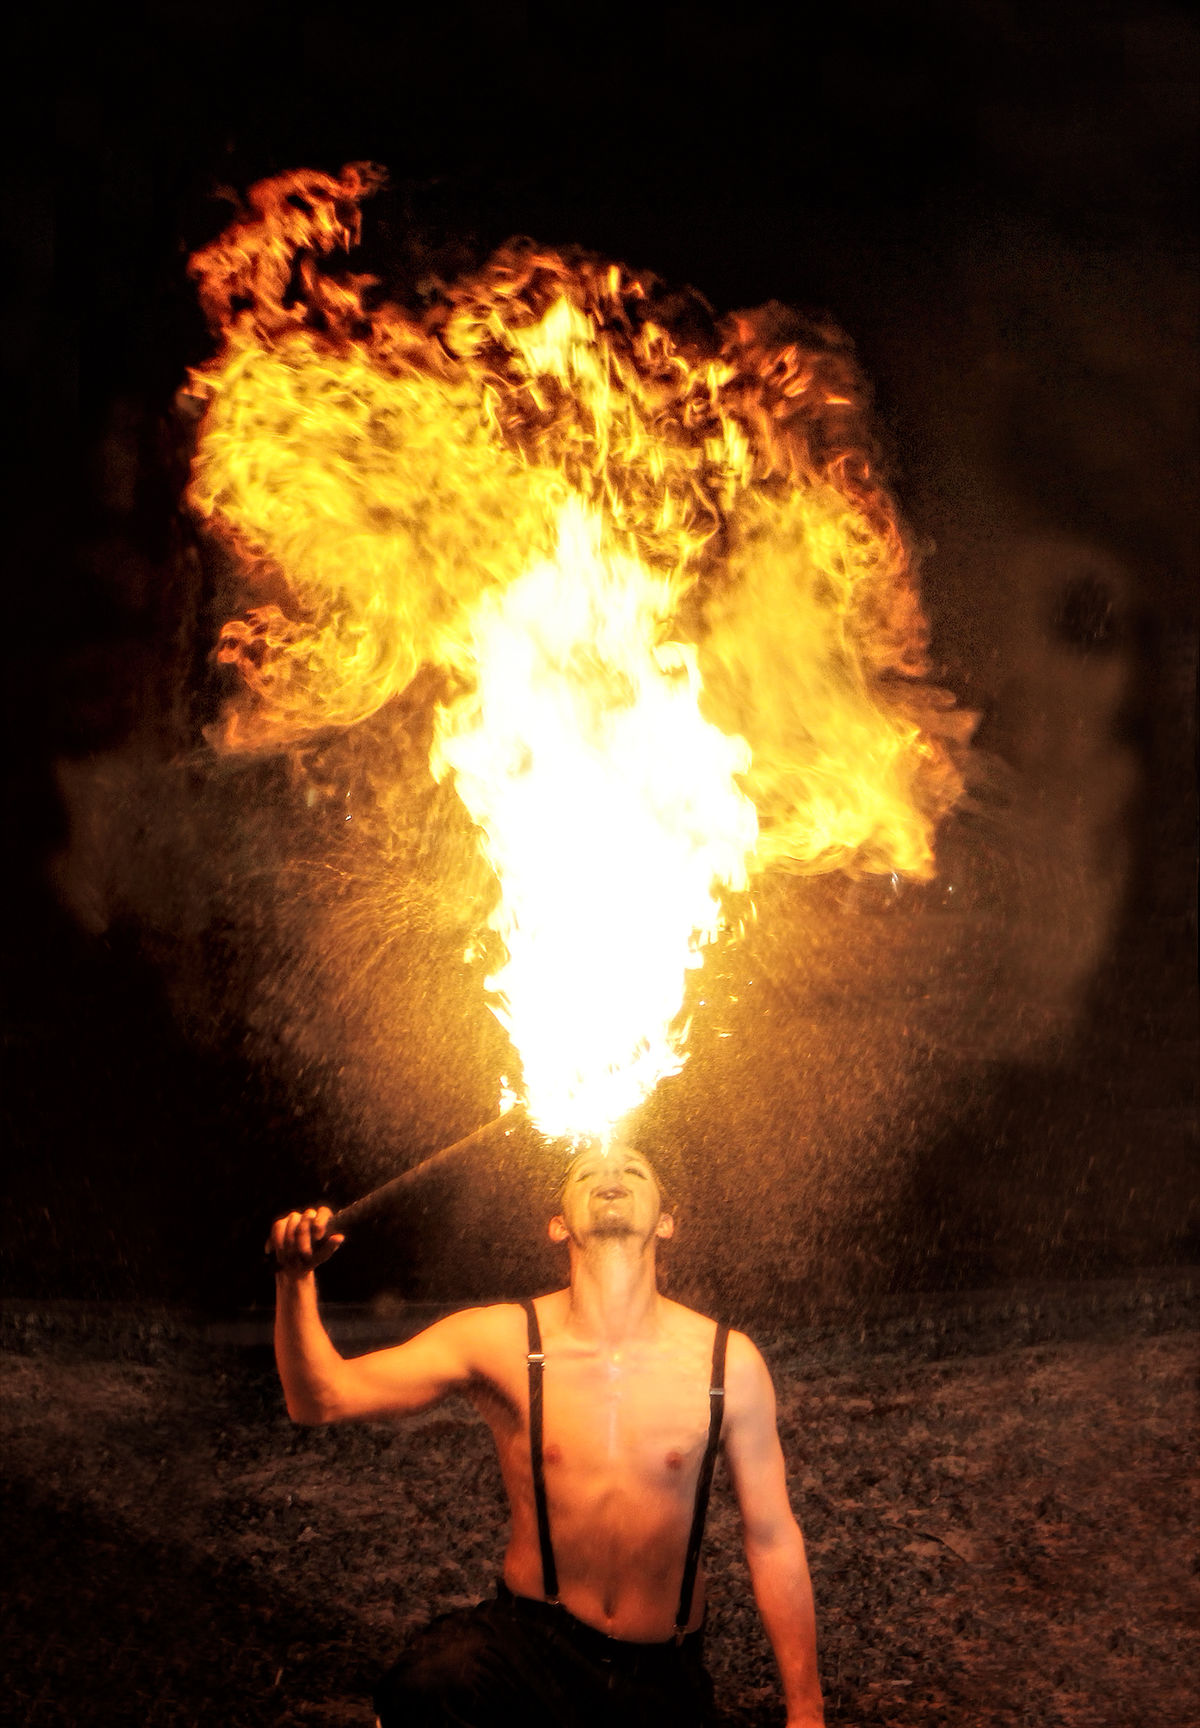 Professional circus performer breathes fire. Activity Ball Of Fire  Burning Circus Circus Performer Entertainer Entertainment Extreme Fire Breathing Fire Show Flame Flames Flaming Fun Glowing Heat Illuminated Live Show Orange Color Perfoirm Shopping Stunt Torch Tourist Attraction